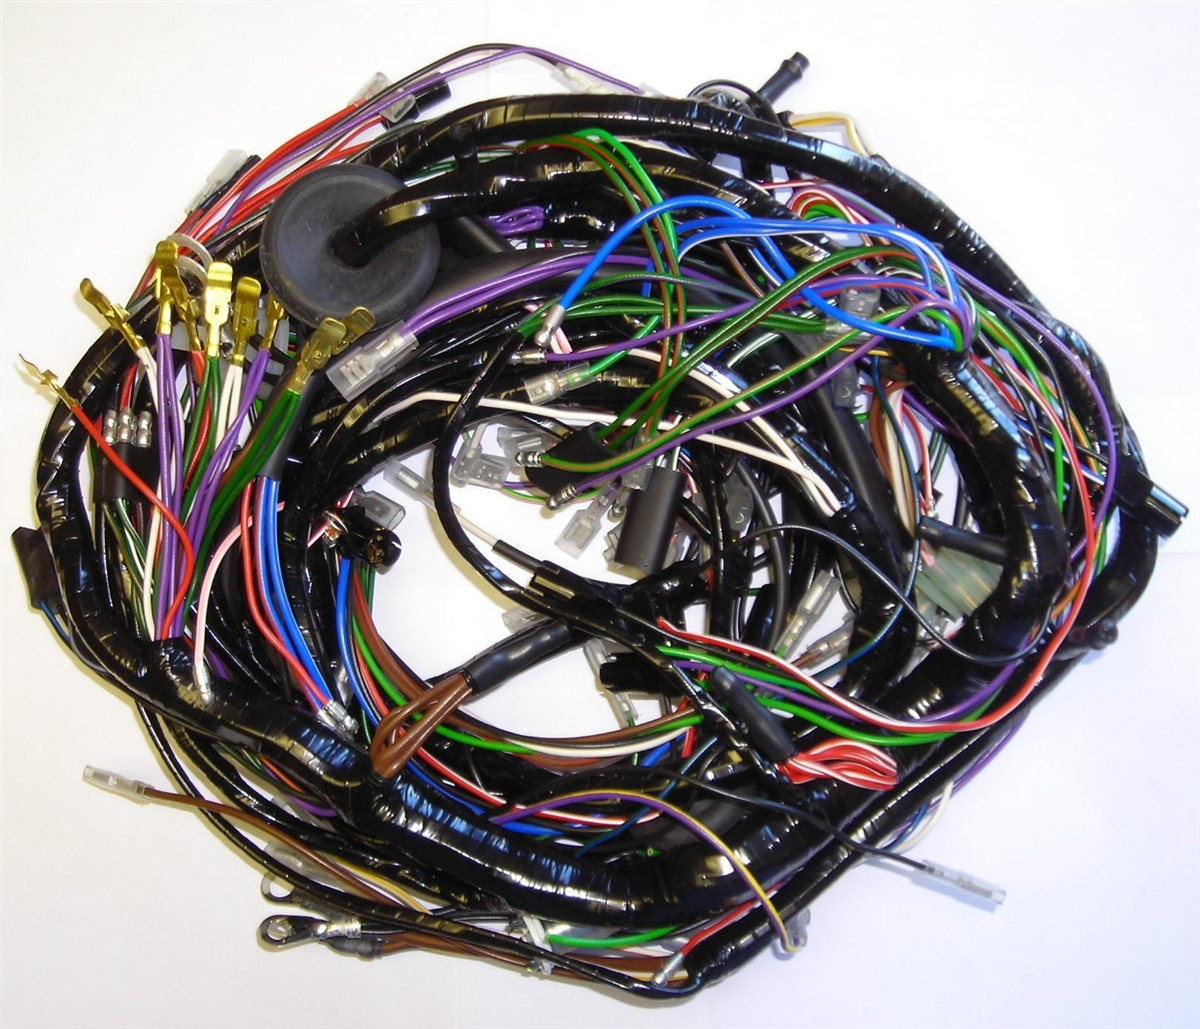 Magnificent Triumph Spitfire 1500 Main Wiring Harness Wiring 101 Vieworaxxcnl